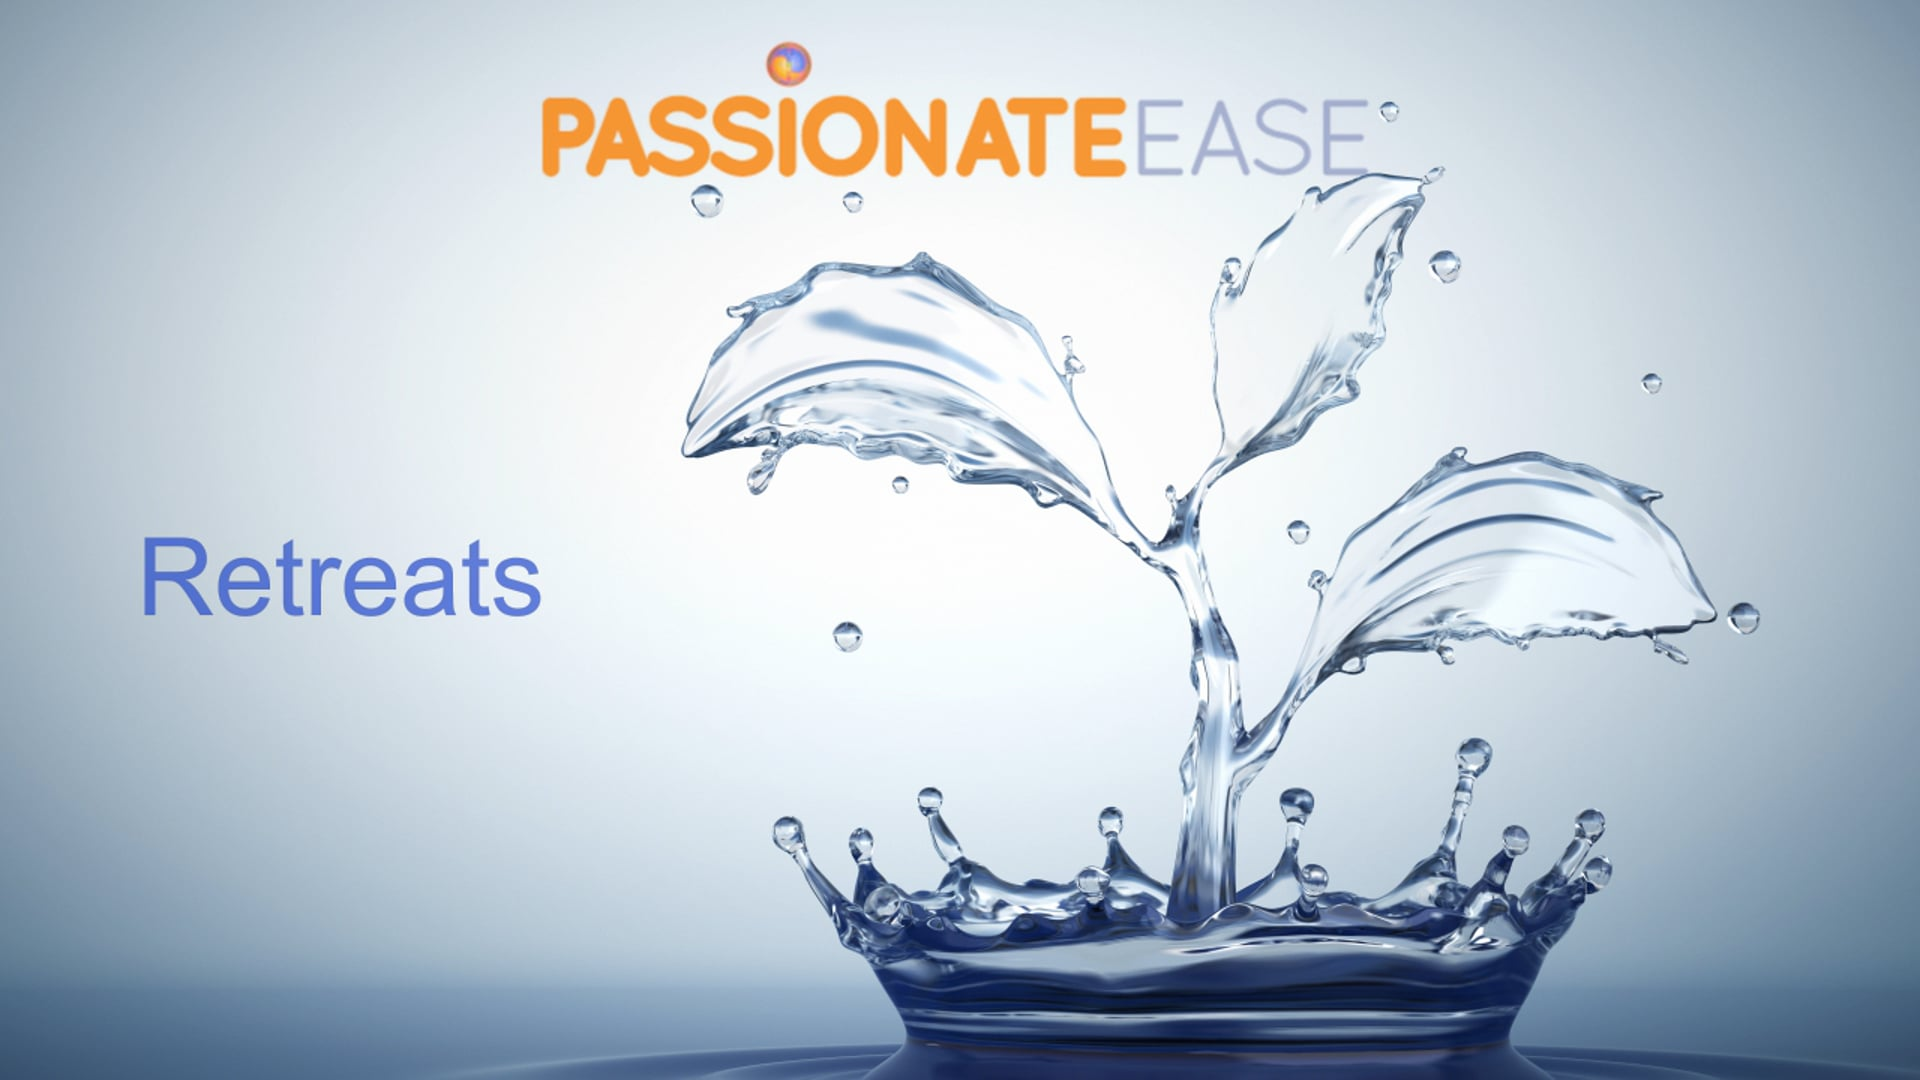 Passionate Ease Retreats with Lawrence Conlan